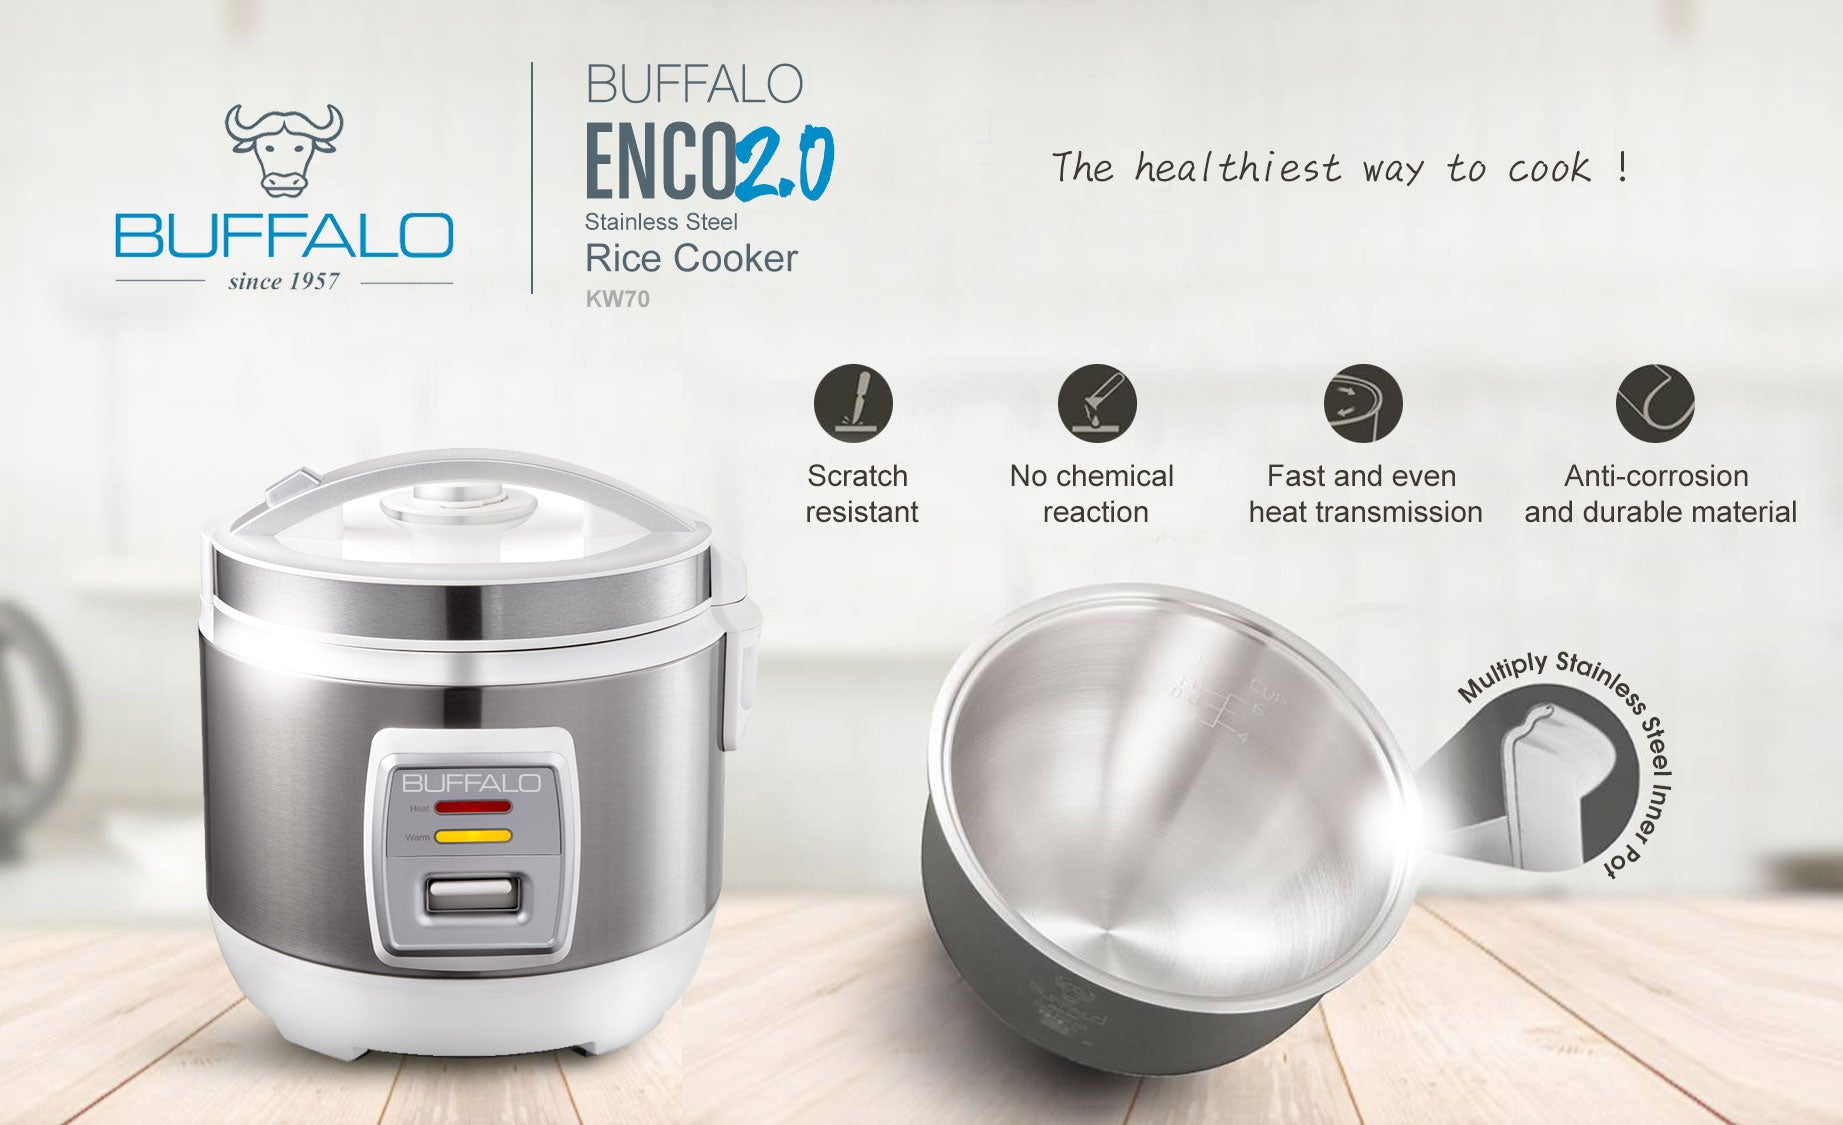 Buffalo Stainless Steel Rice Cooker